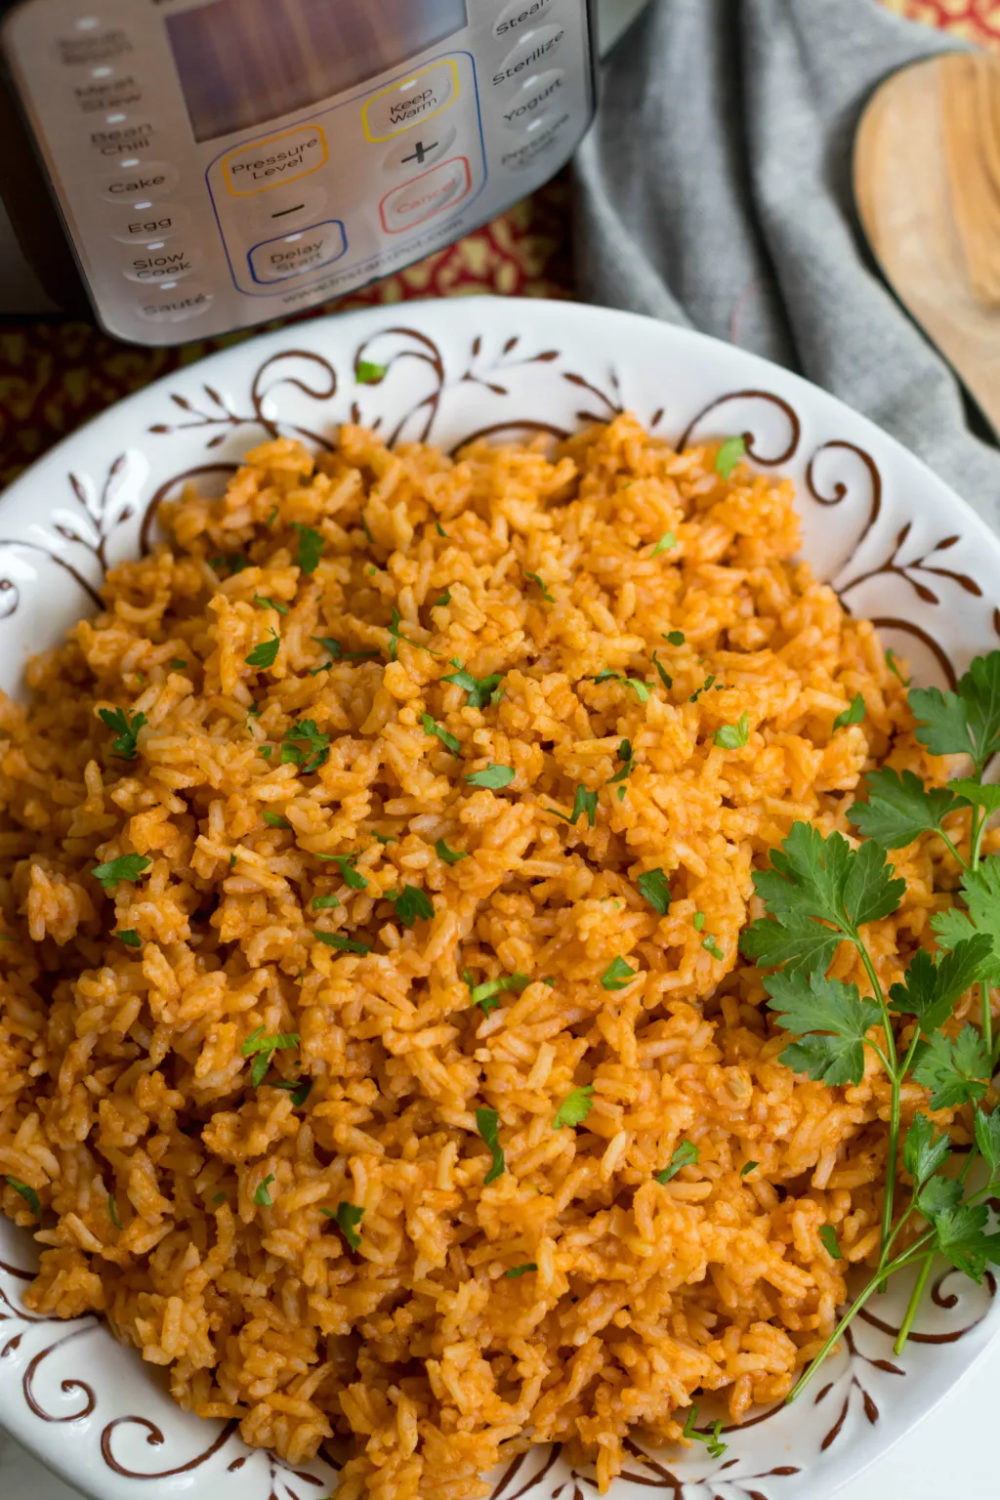 d6d2e428aea9400dc967f9d453548ccb - Better Homes And Gardens Spanish Rice Recipe